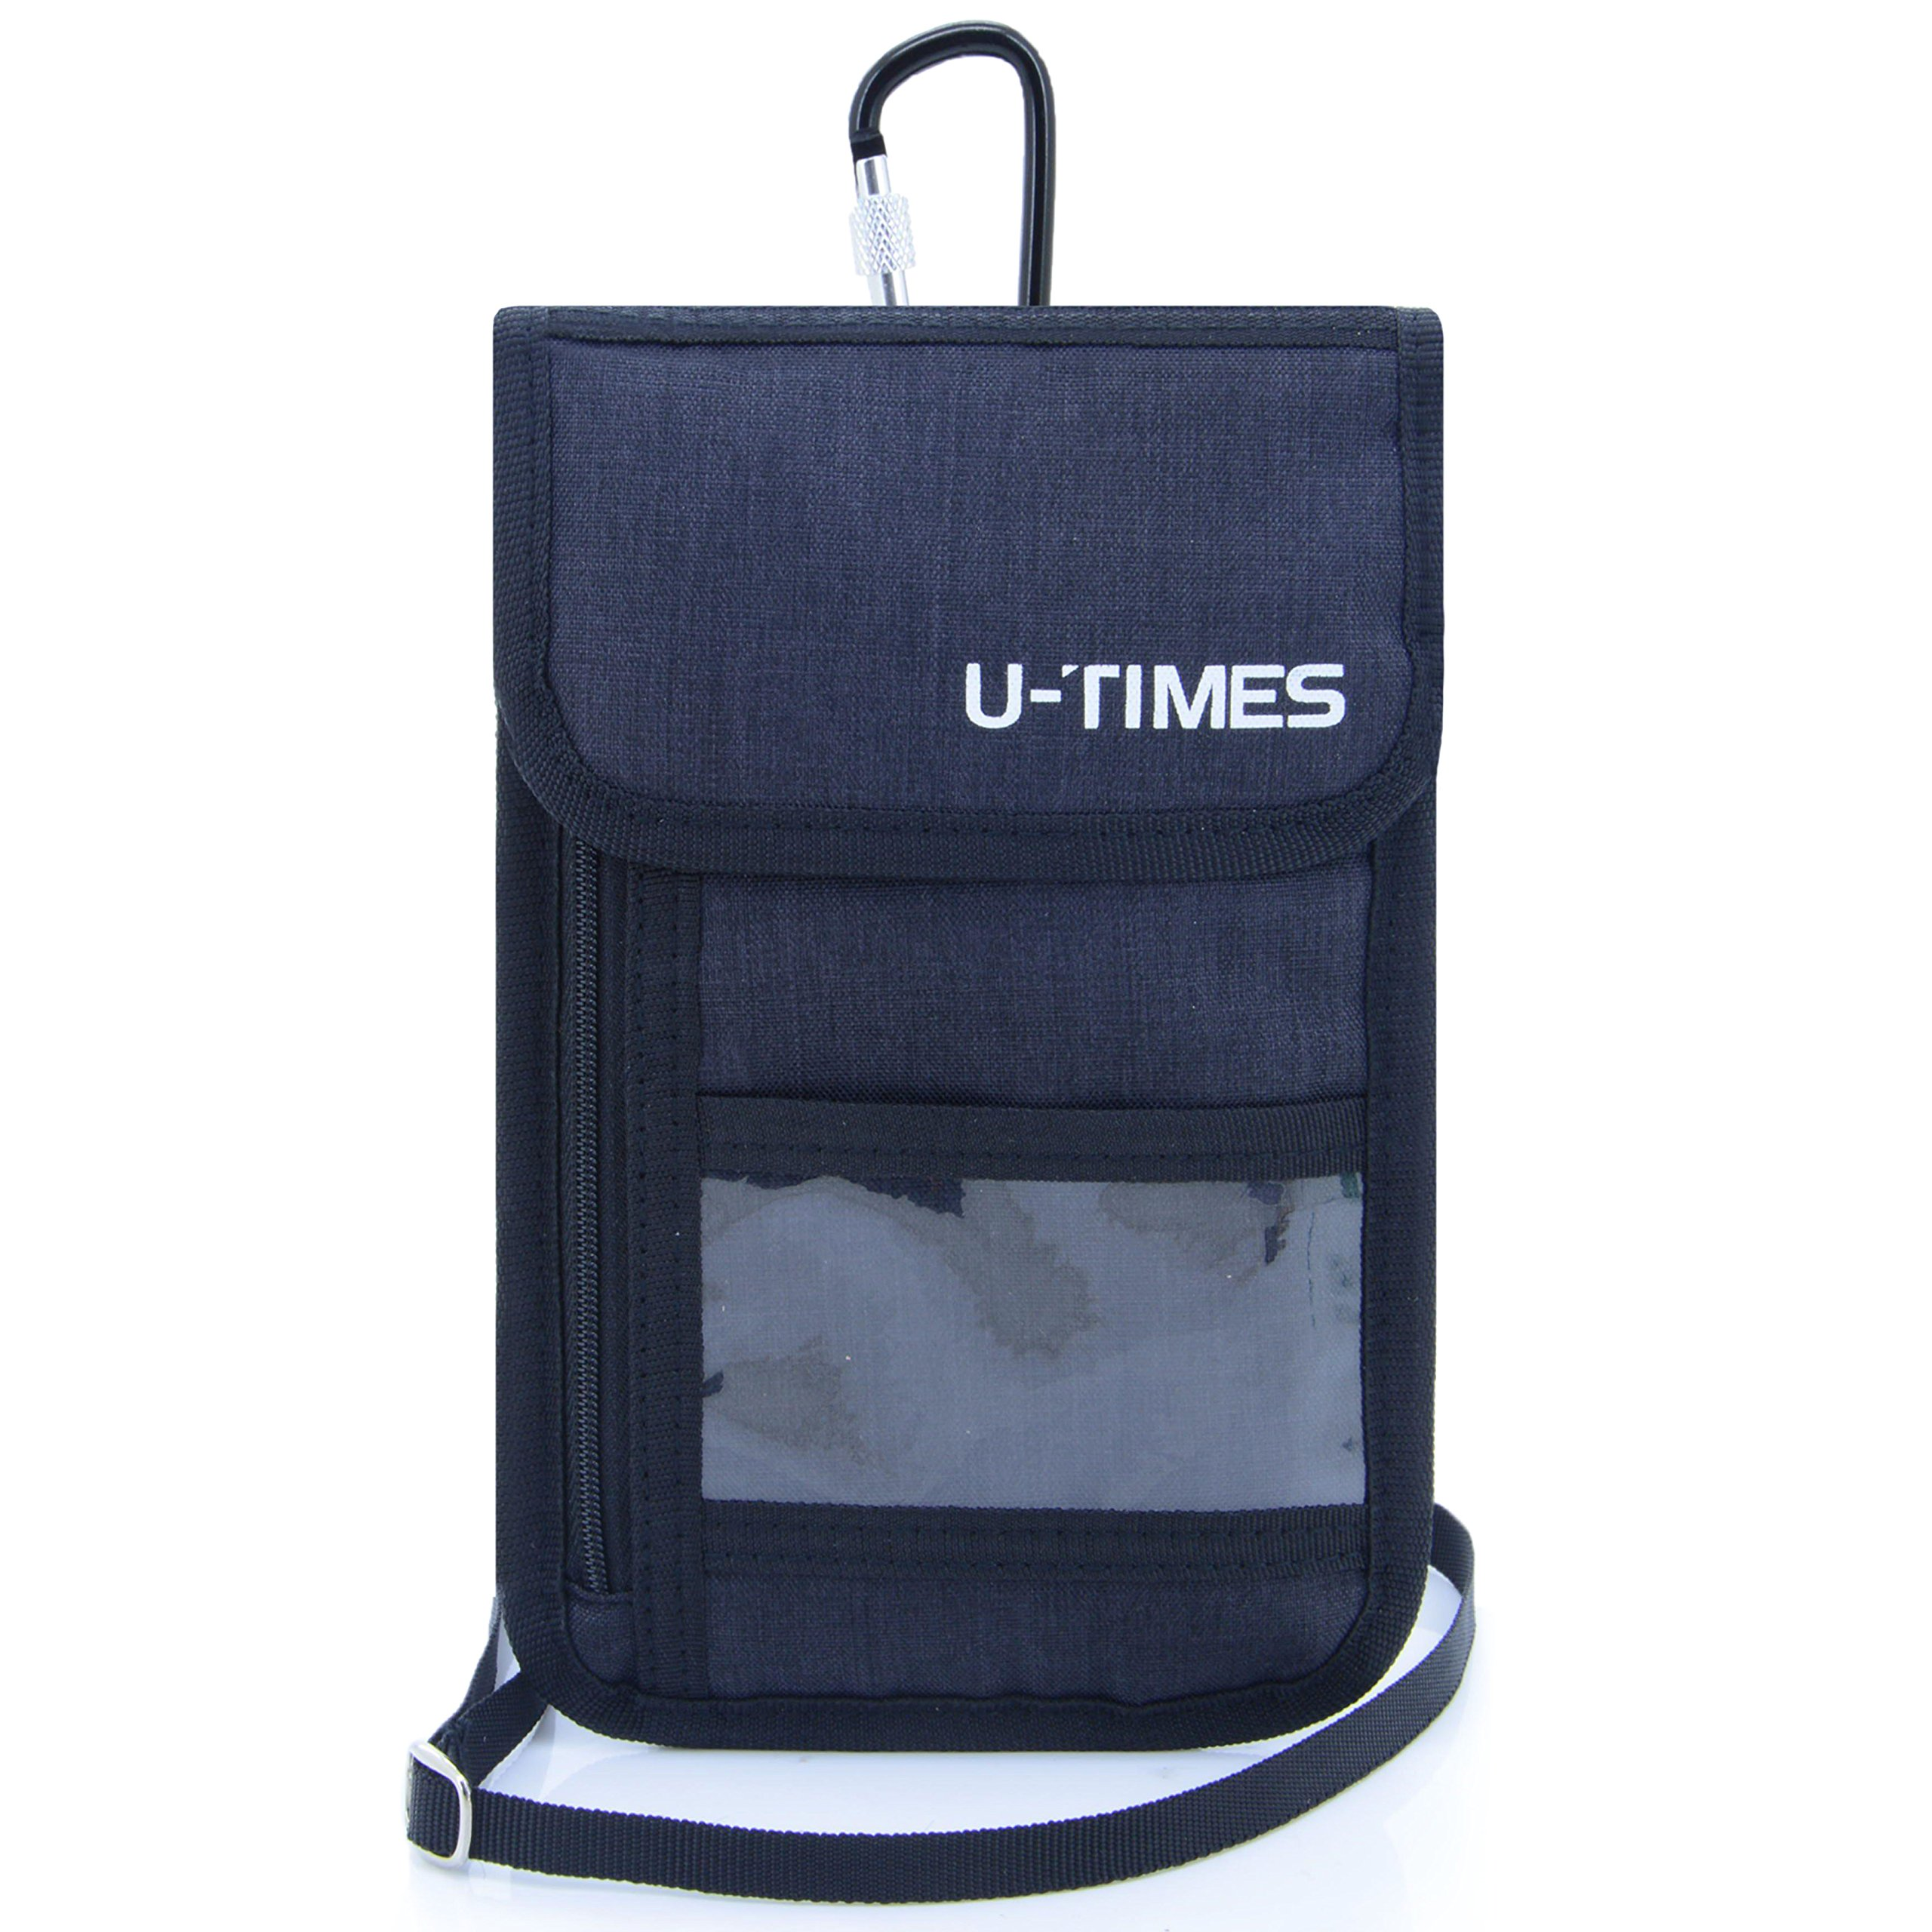 UTIMES Travel Passport Neck Bag RFID Blocking Cell Phone Wallet Pouch With Additional Carabiner-Ultra Slim & Light Weight(Black)